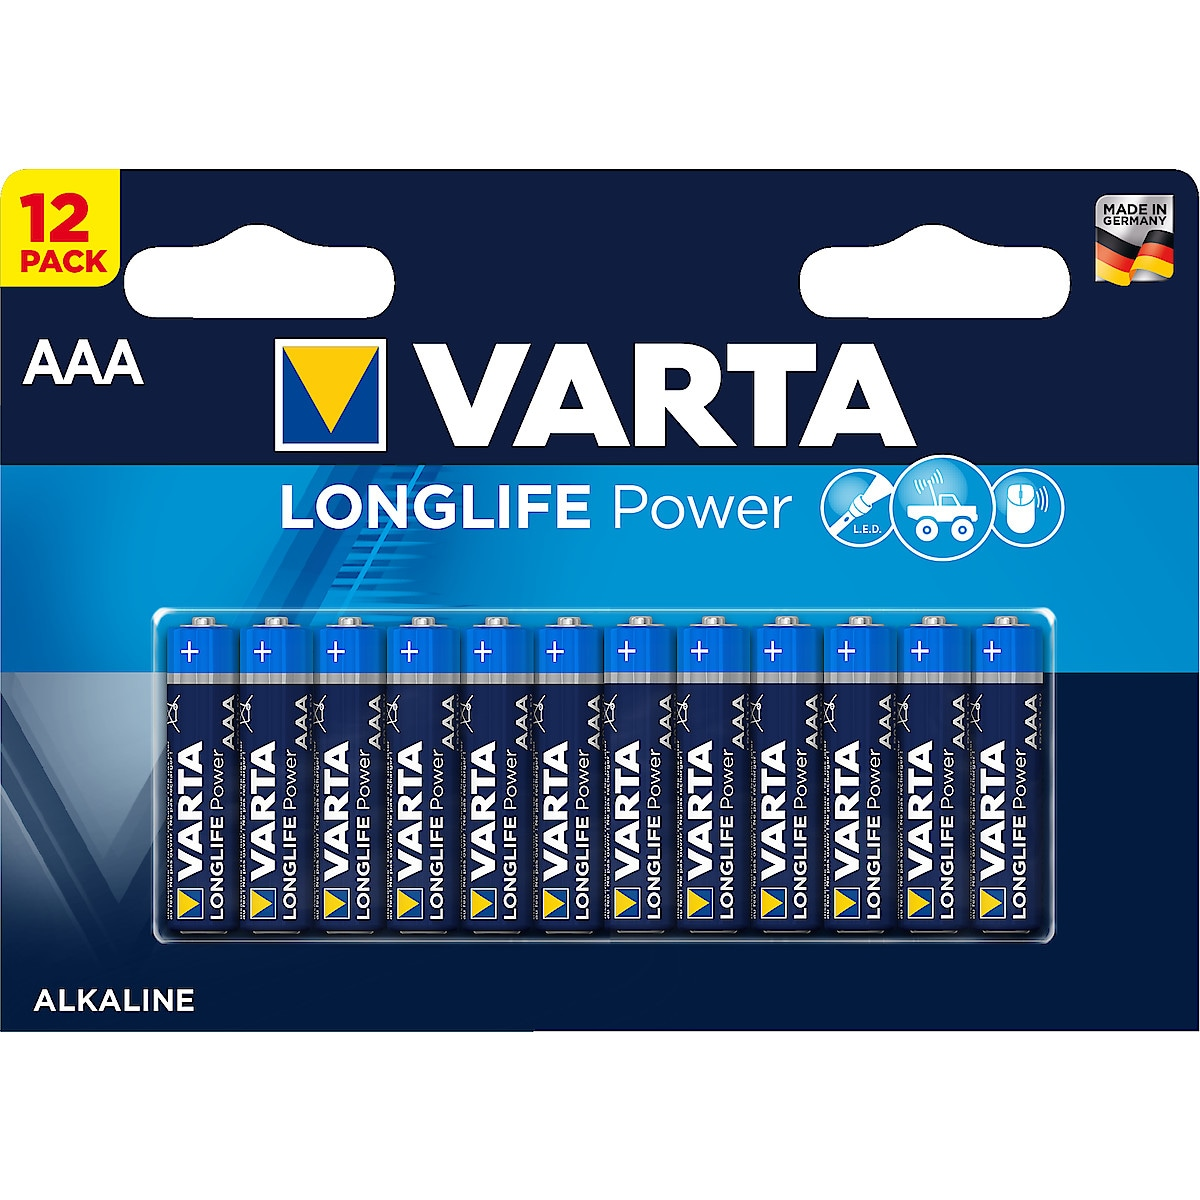 Alkaliskt batteri AAA/LR03 Varta Longlife Power